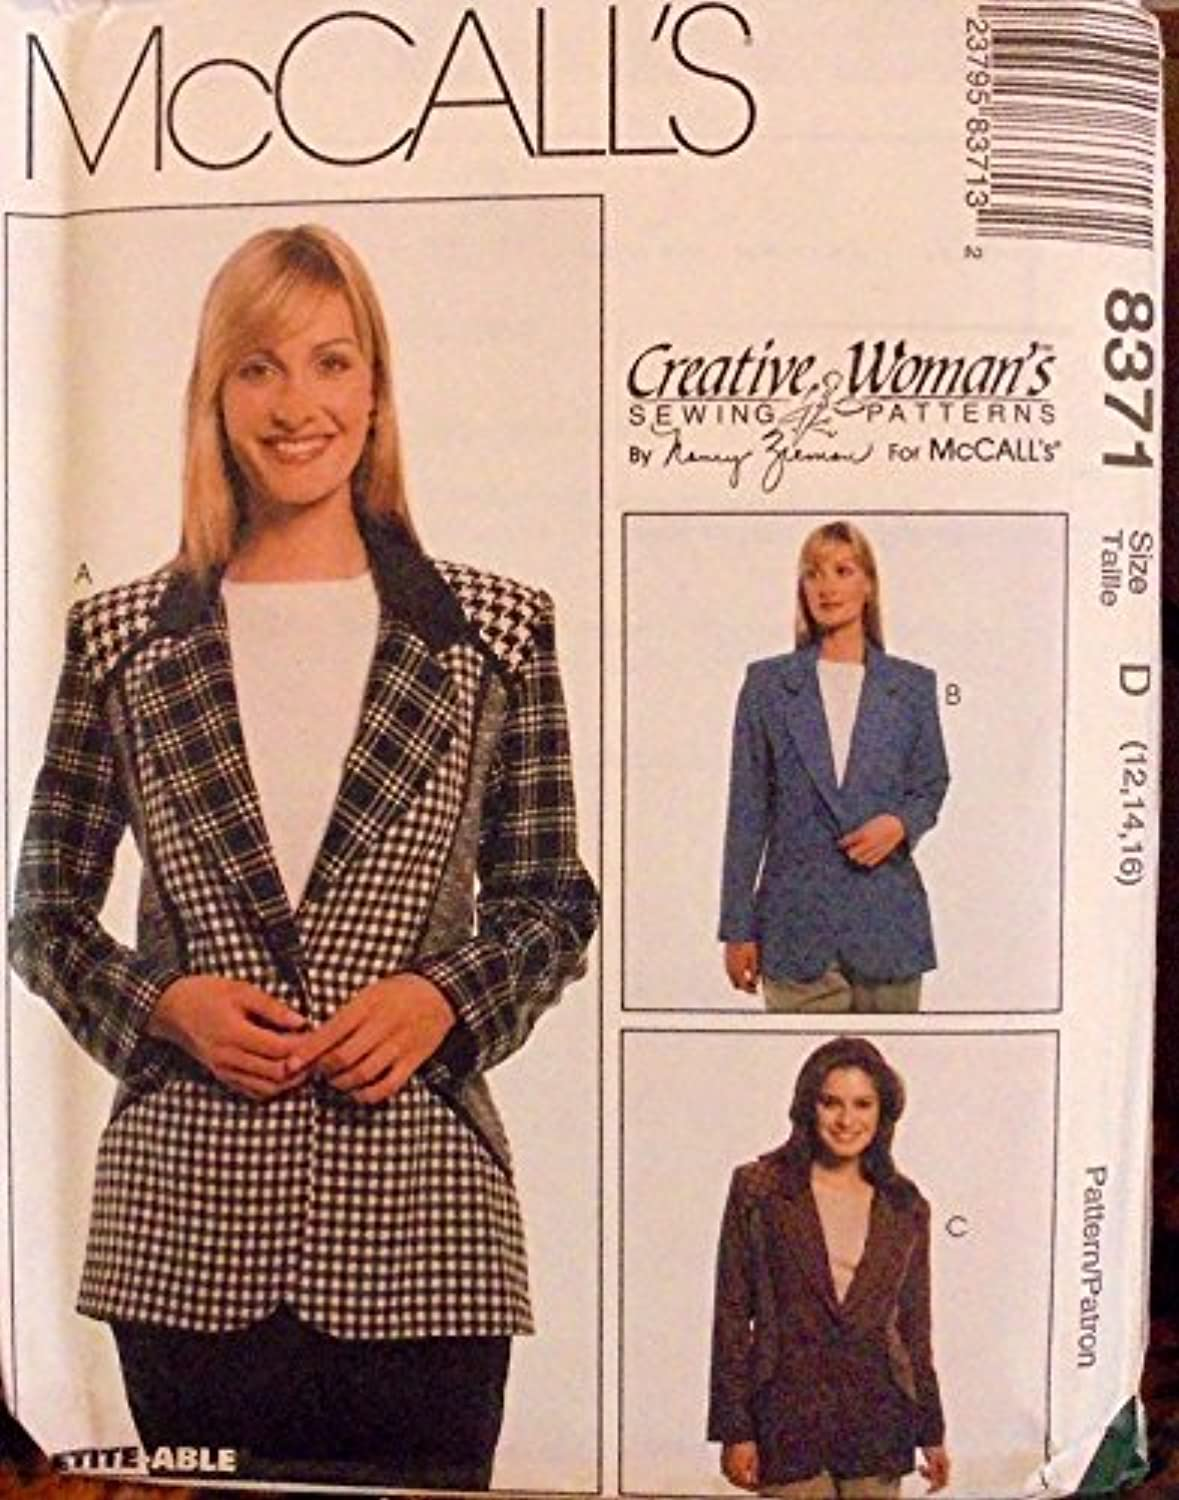 McCalls Sewing Pattern 8371 Creative Woman's Misses 12,14,16 Jacket 2 Lengths